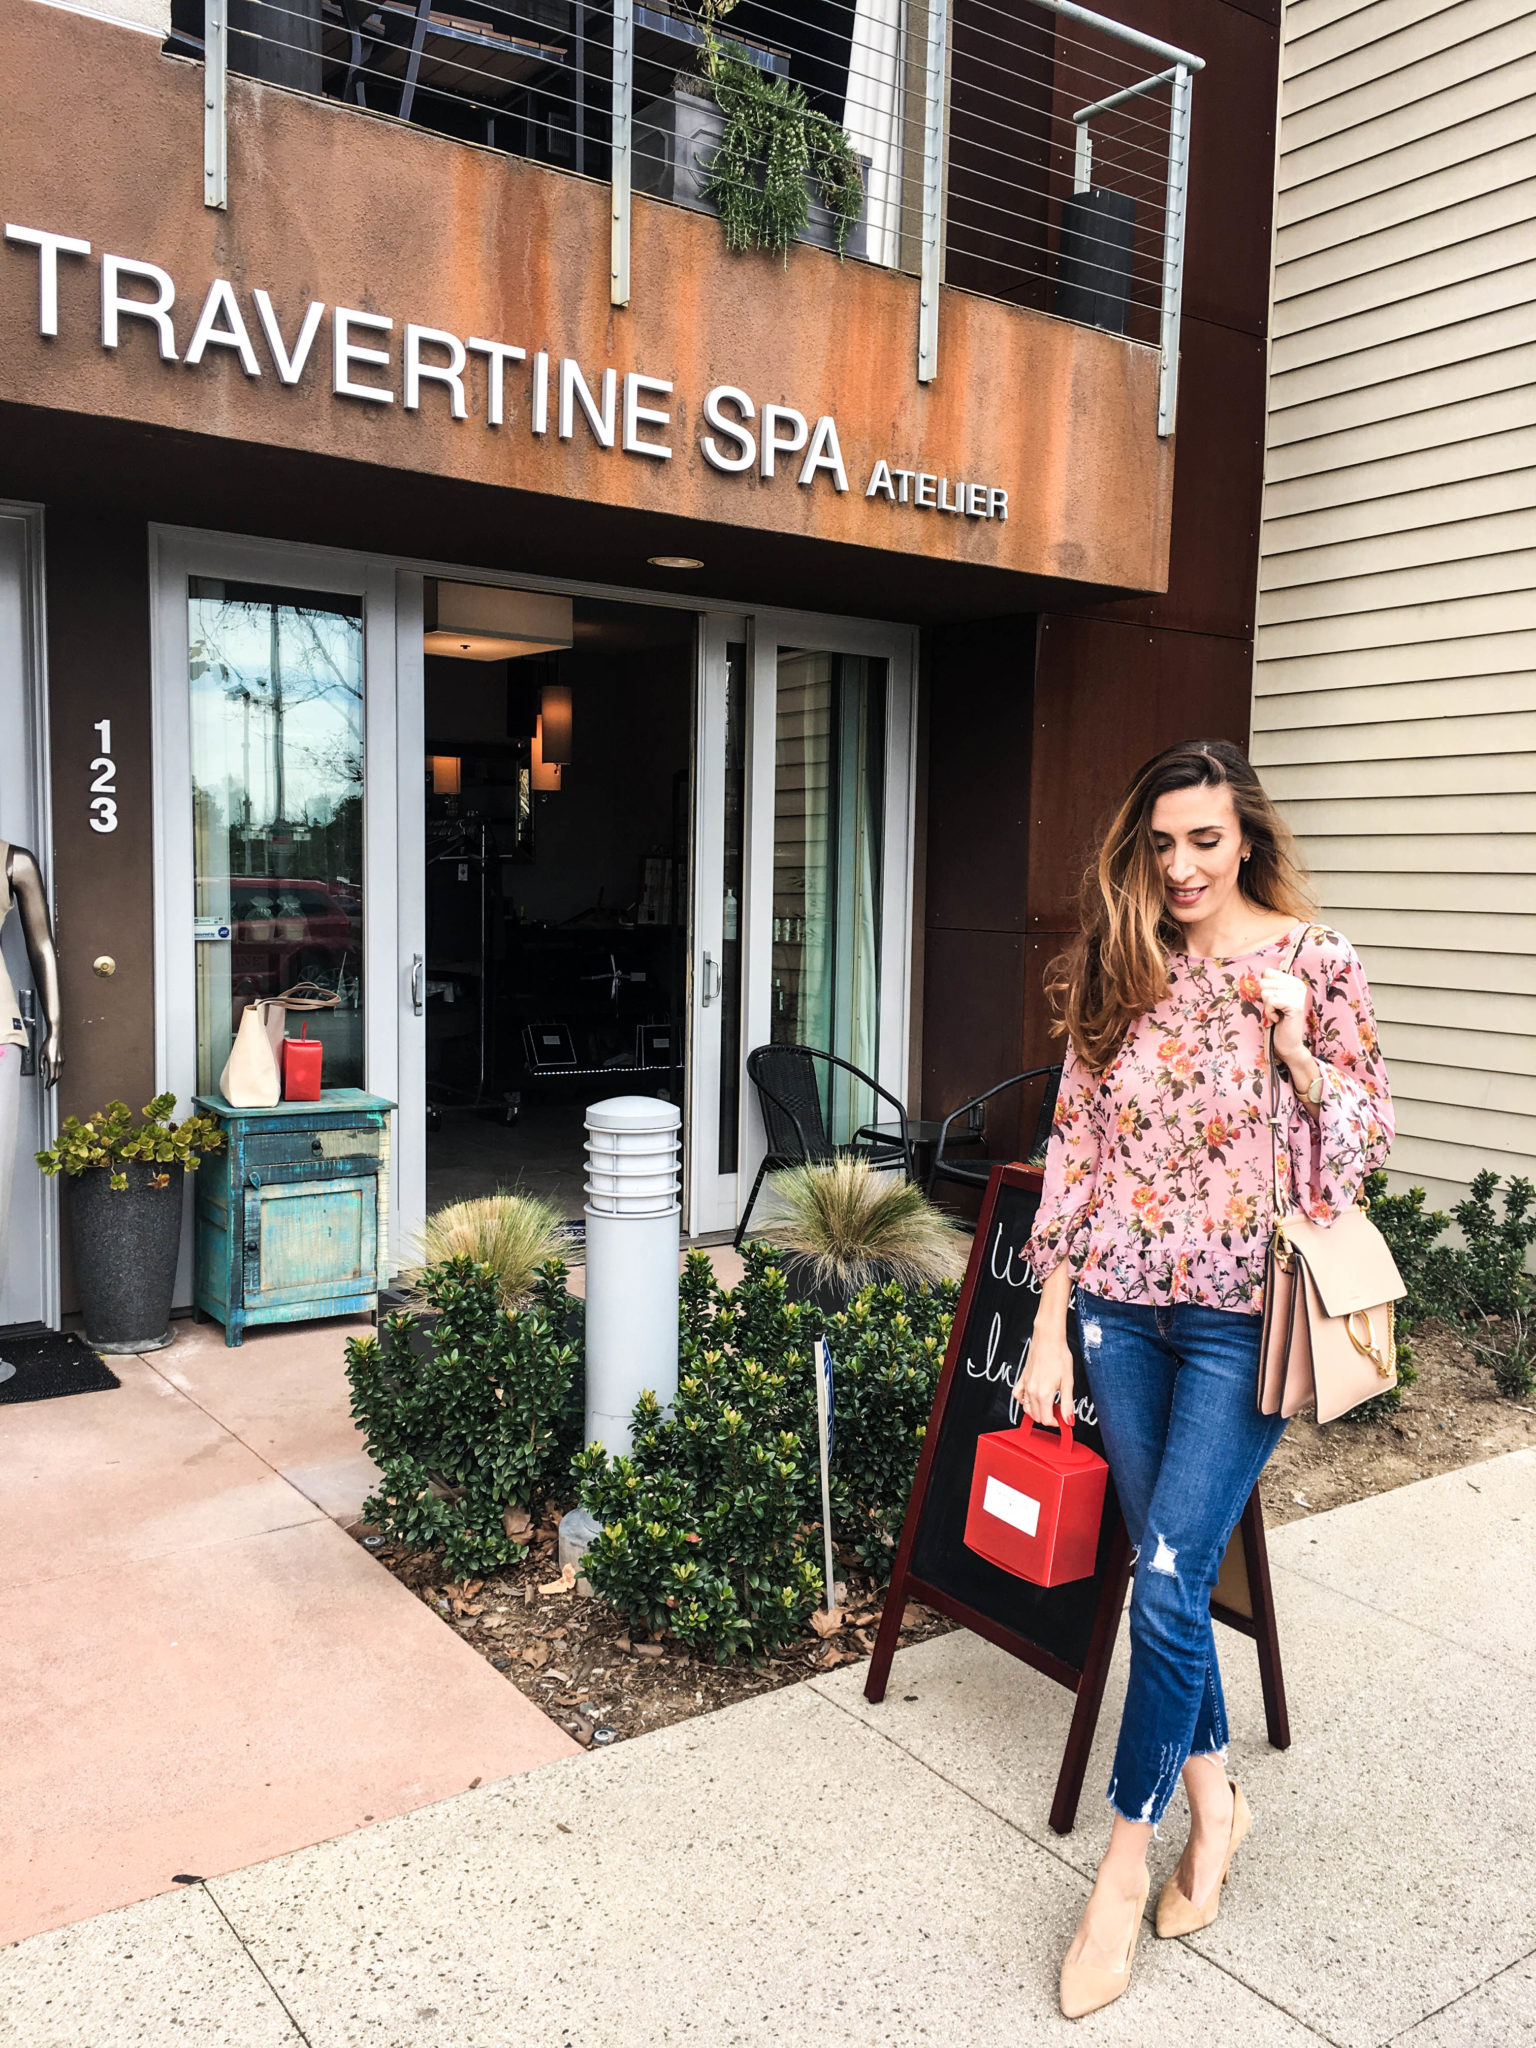 relax your mind and body with travertine spa products! – coffee